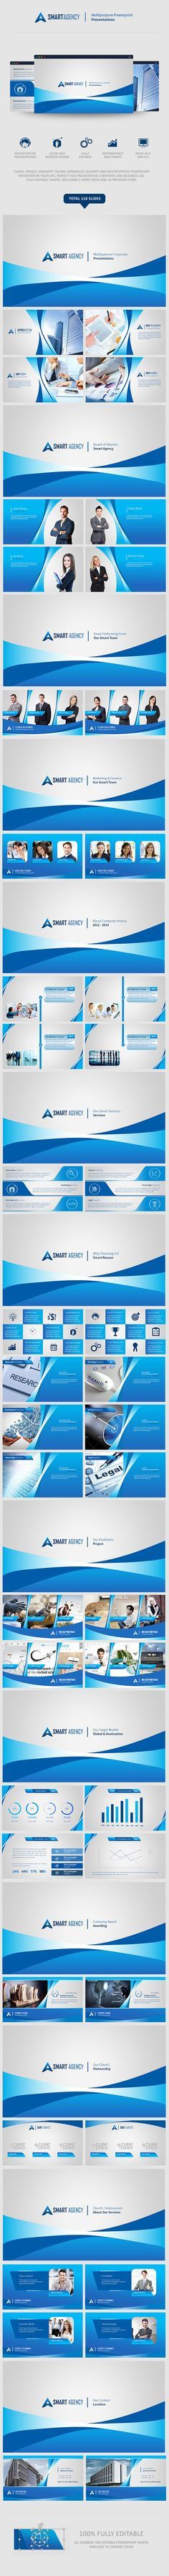 Ppt Template  Design  Ppt  Slideshows    HttpWww